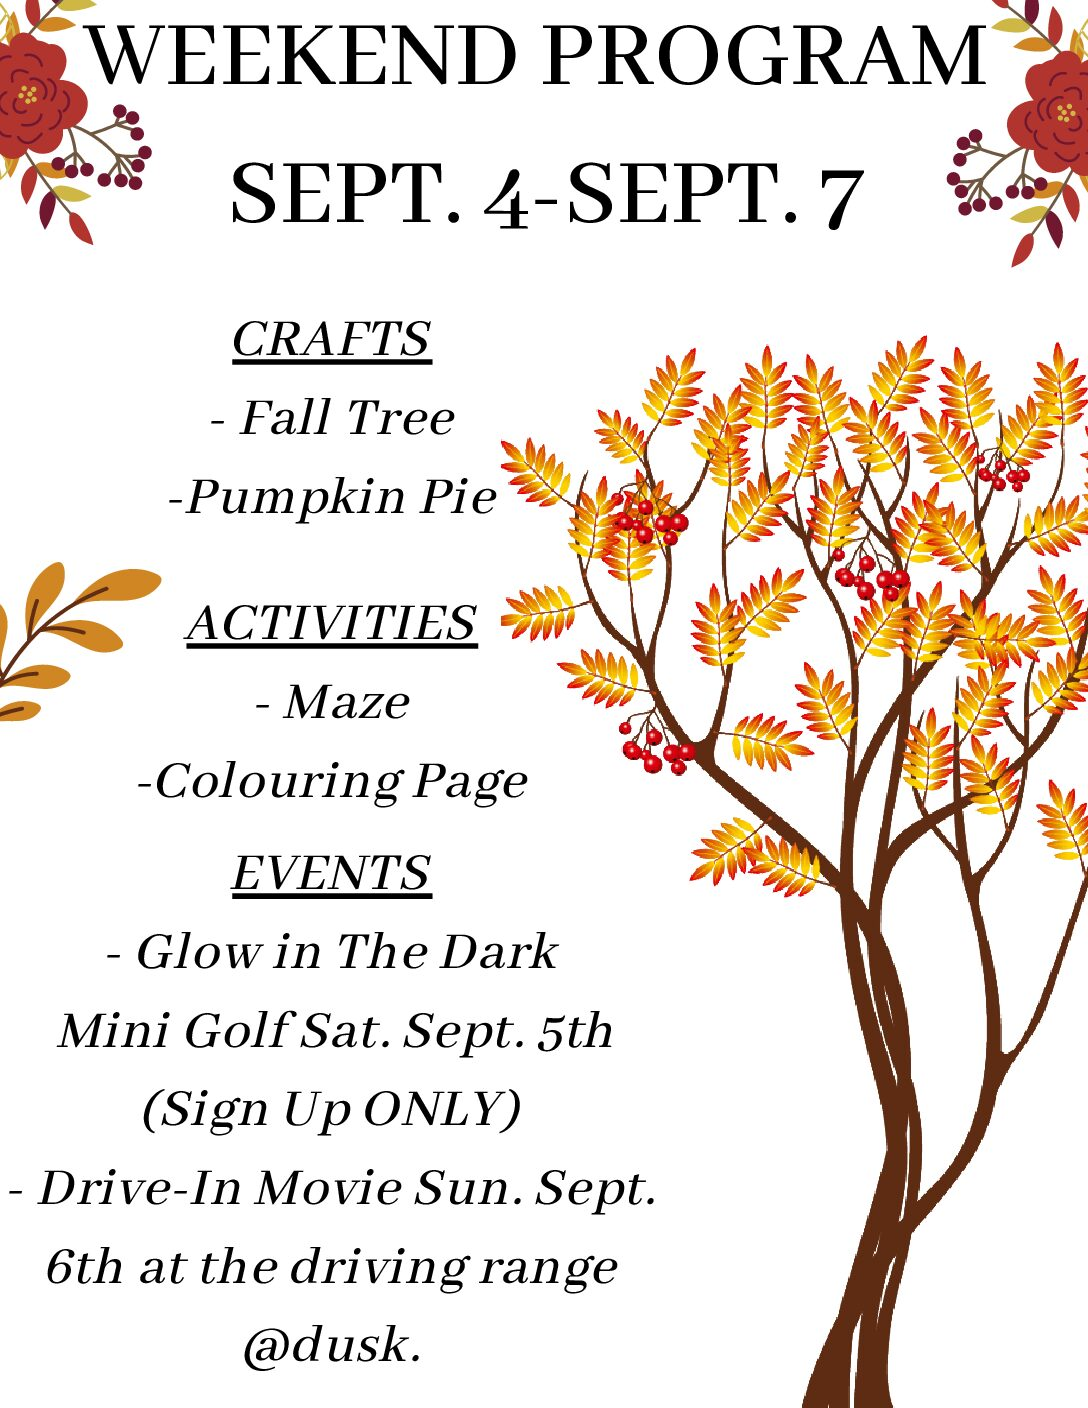 Weekend Program Sept. 4-7